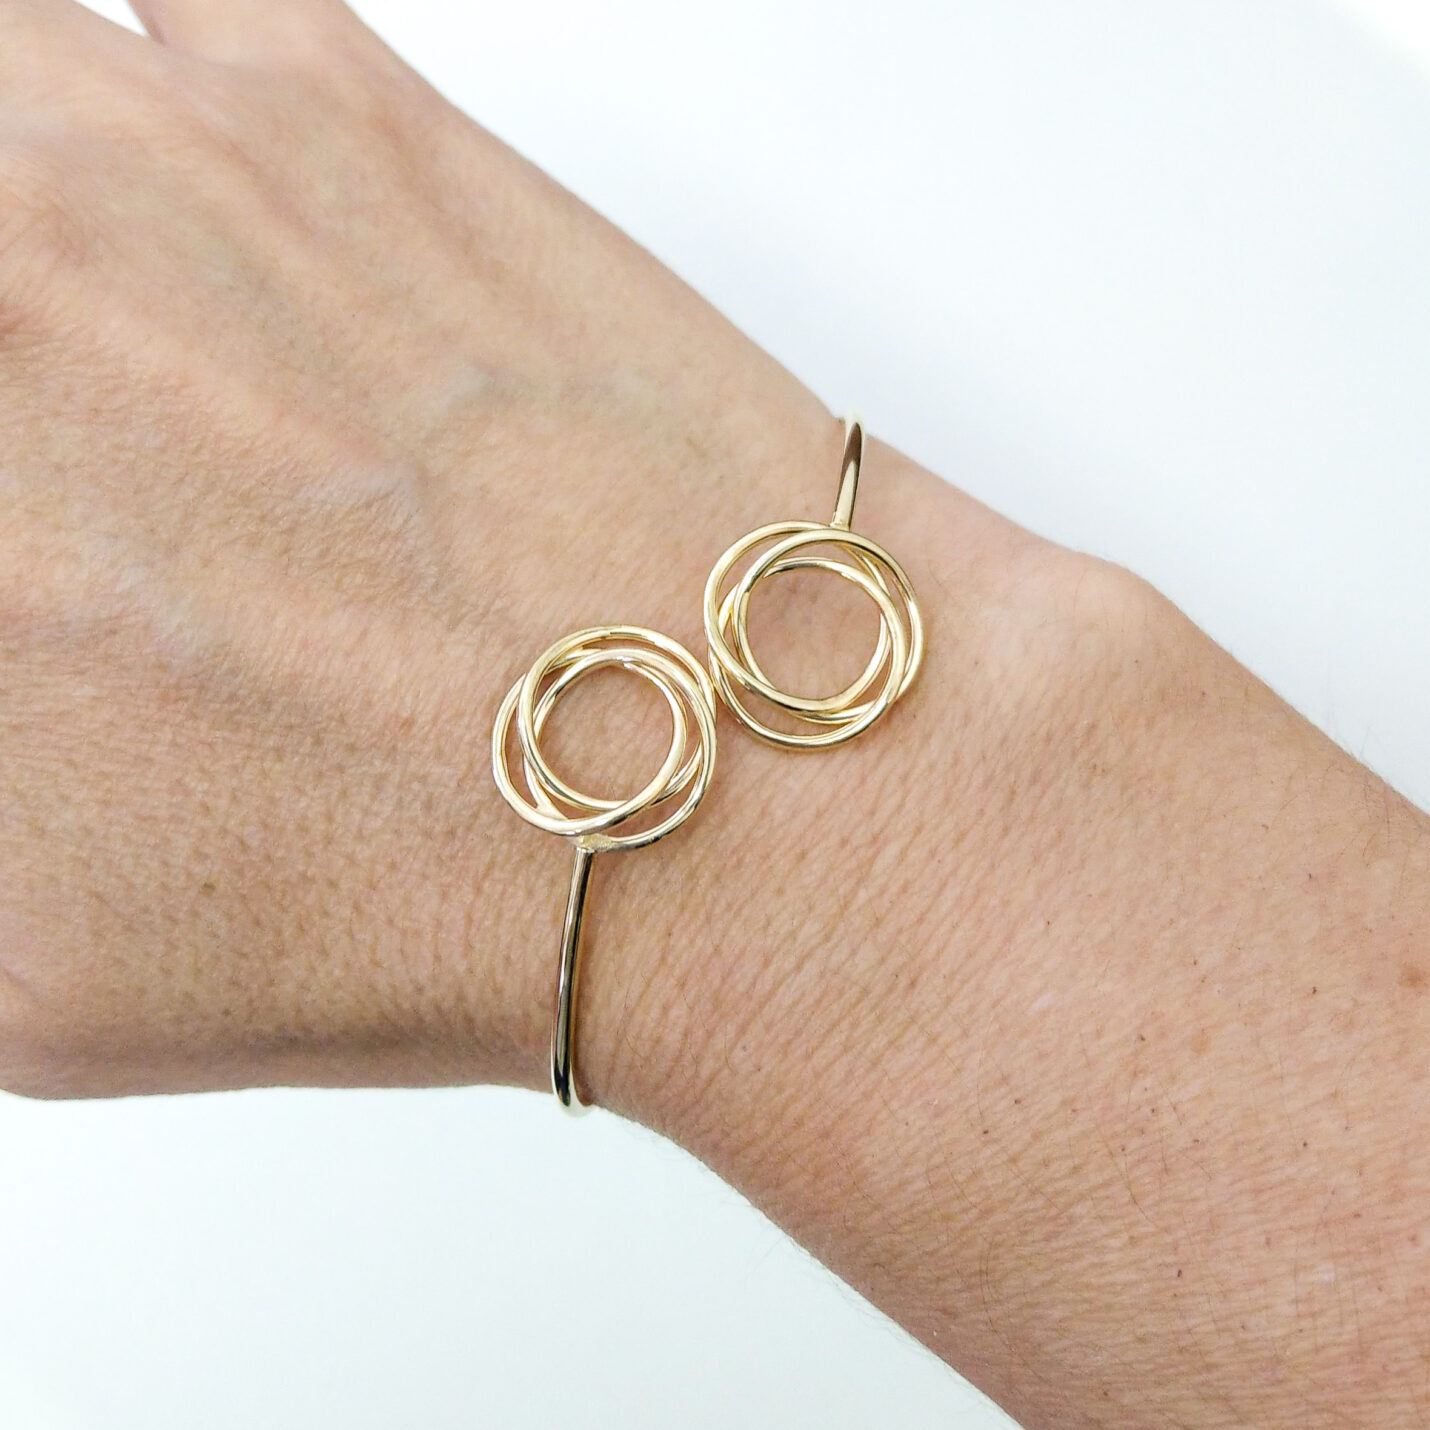 9ct. Yellow Gold Knot Bangle